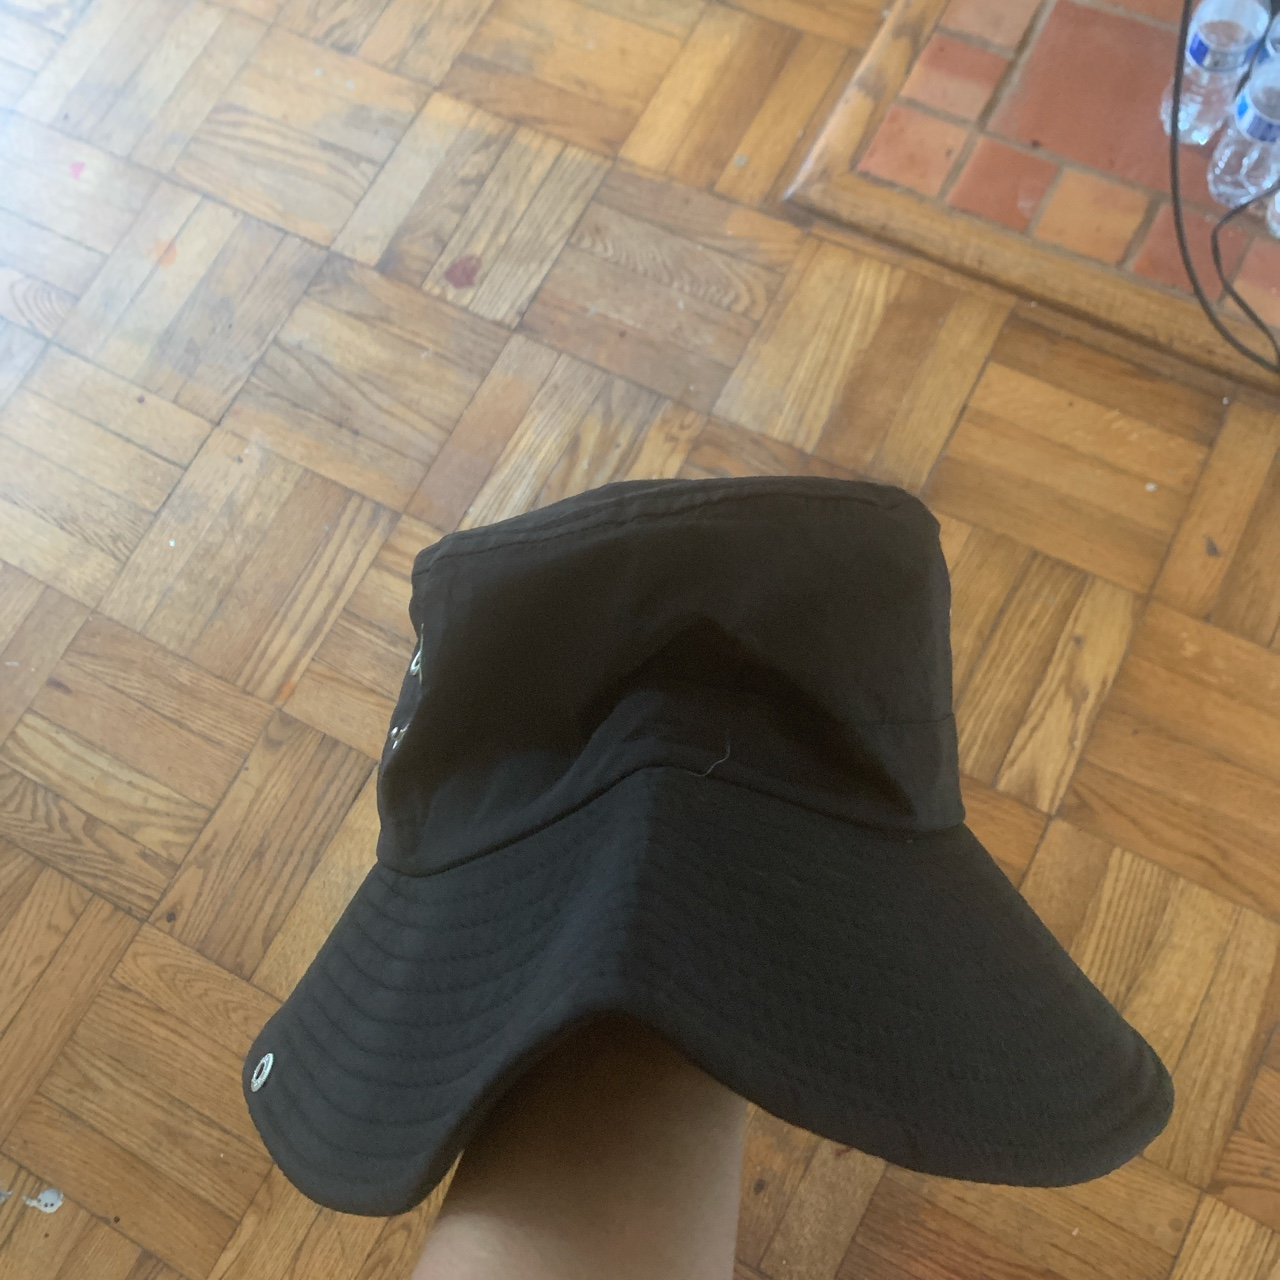 Product Image 1 - bucket hat great for style, if